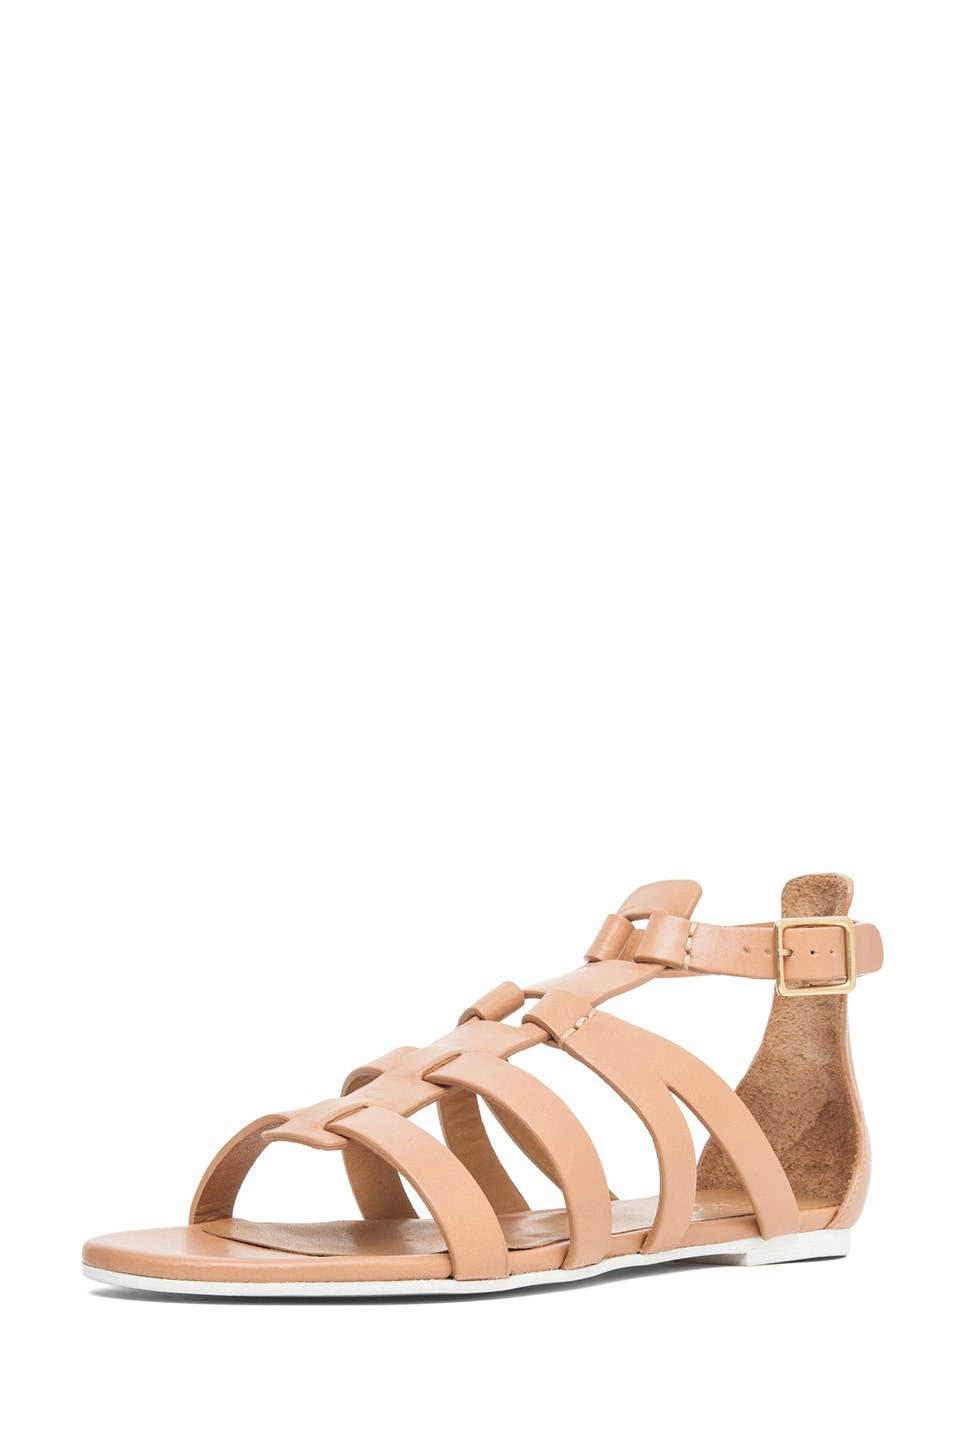 Image 2 of Chloe Gladiator Sandal in Nude